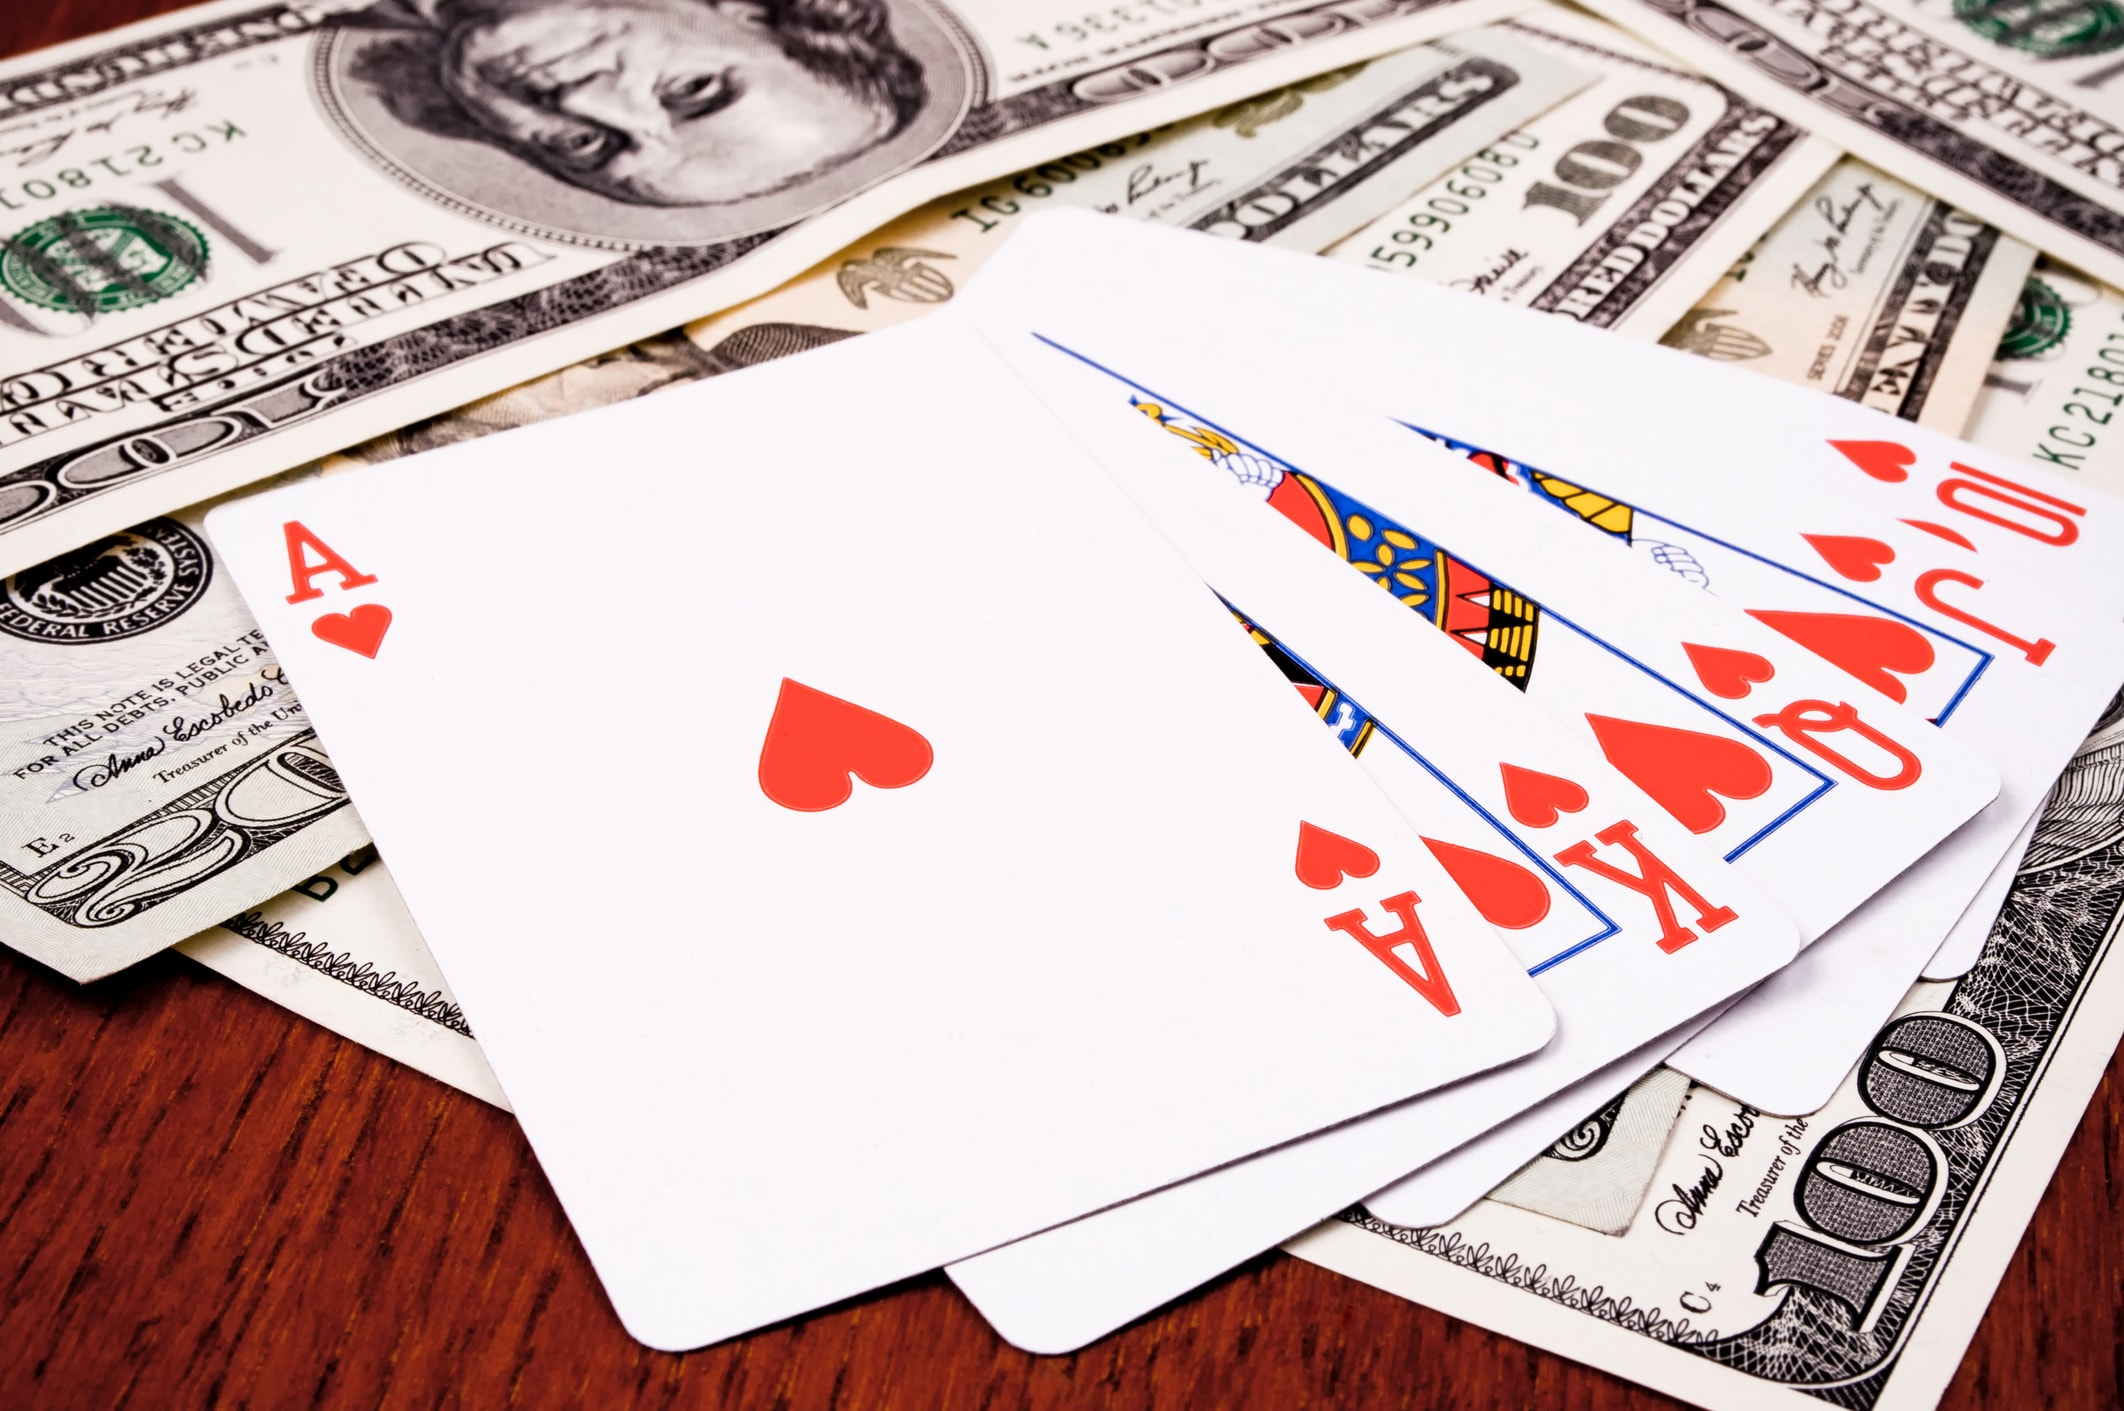 Royal flush with a bundle of cash on the table